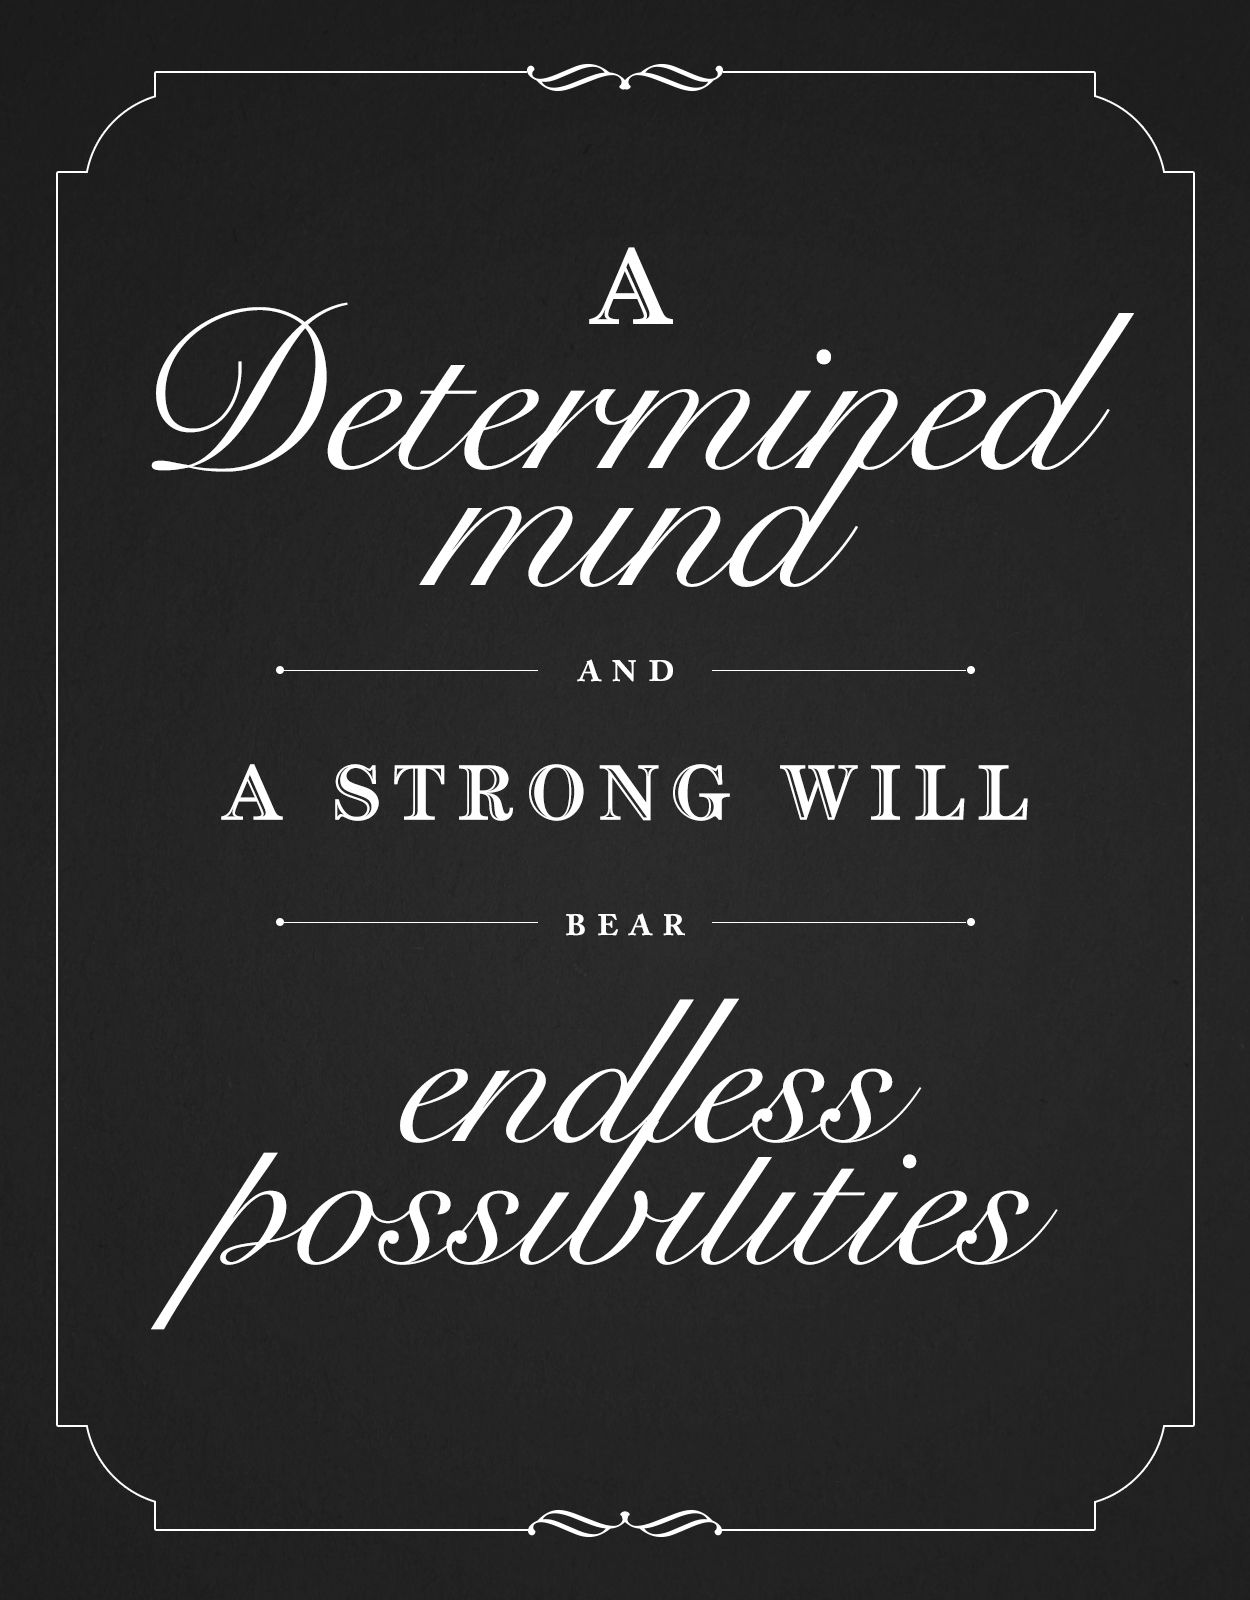 A determined mind and a strong will bear endless possibilities. l